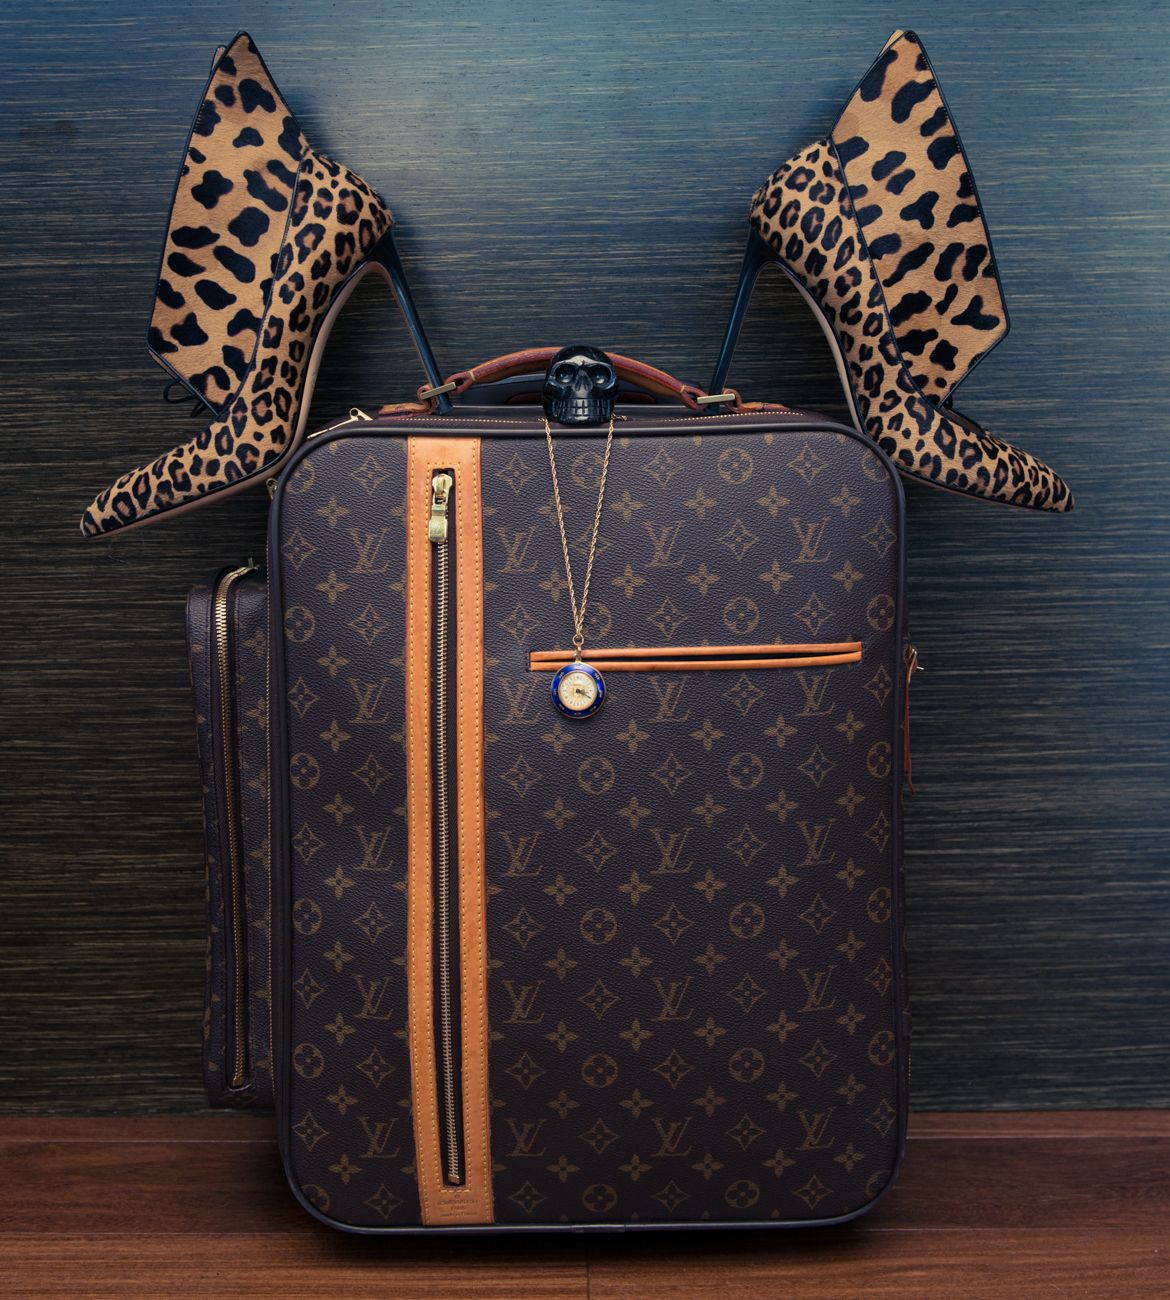 We've always wanted an Louis Vuitton suitcase: http://www.thecoveteur.com/katie-cassidy-style/